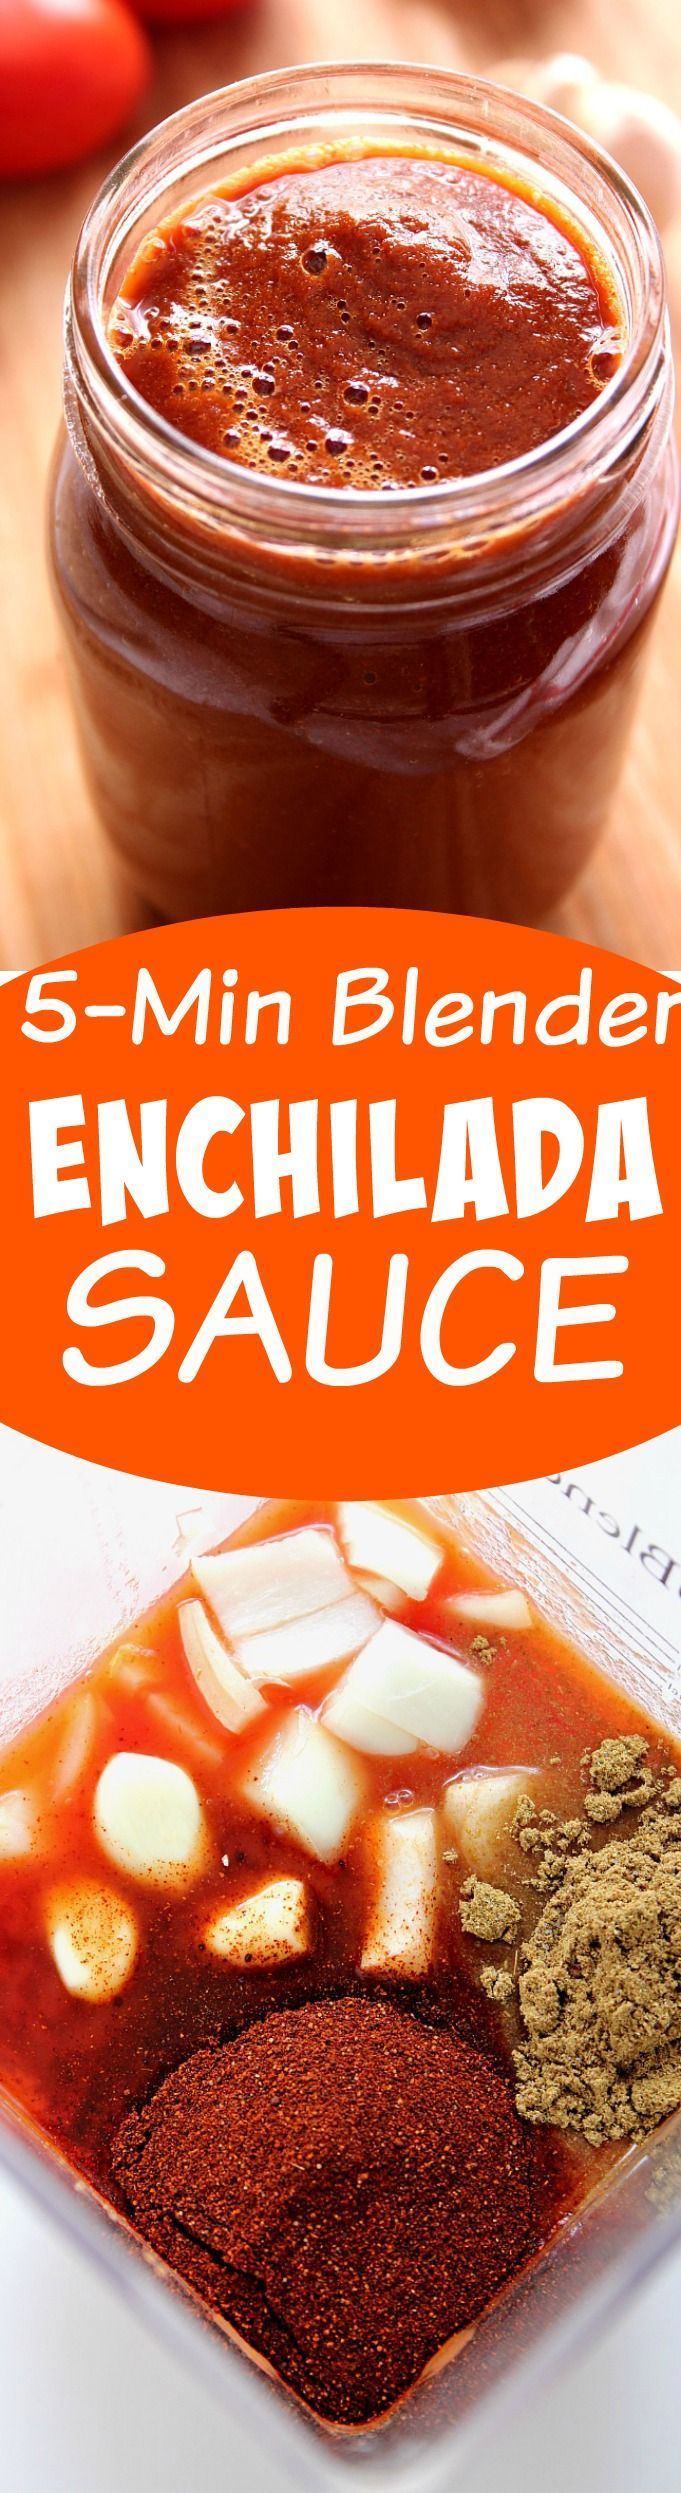 5-Minute Blender Enchilada Sauce Recipe - homemade enchilada sauce made with just 7 ingredients is my new favorite diy recipe. I will never buy it in a can again! http://homeexchange.xyz